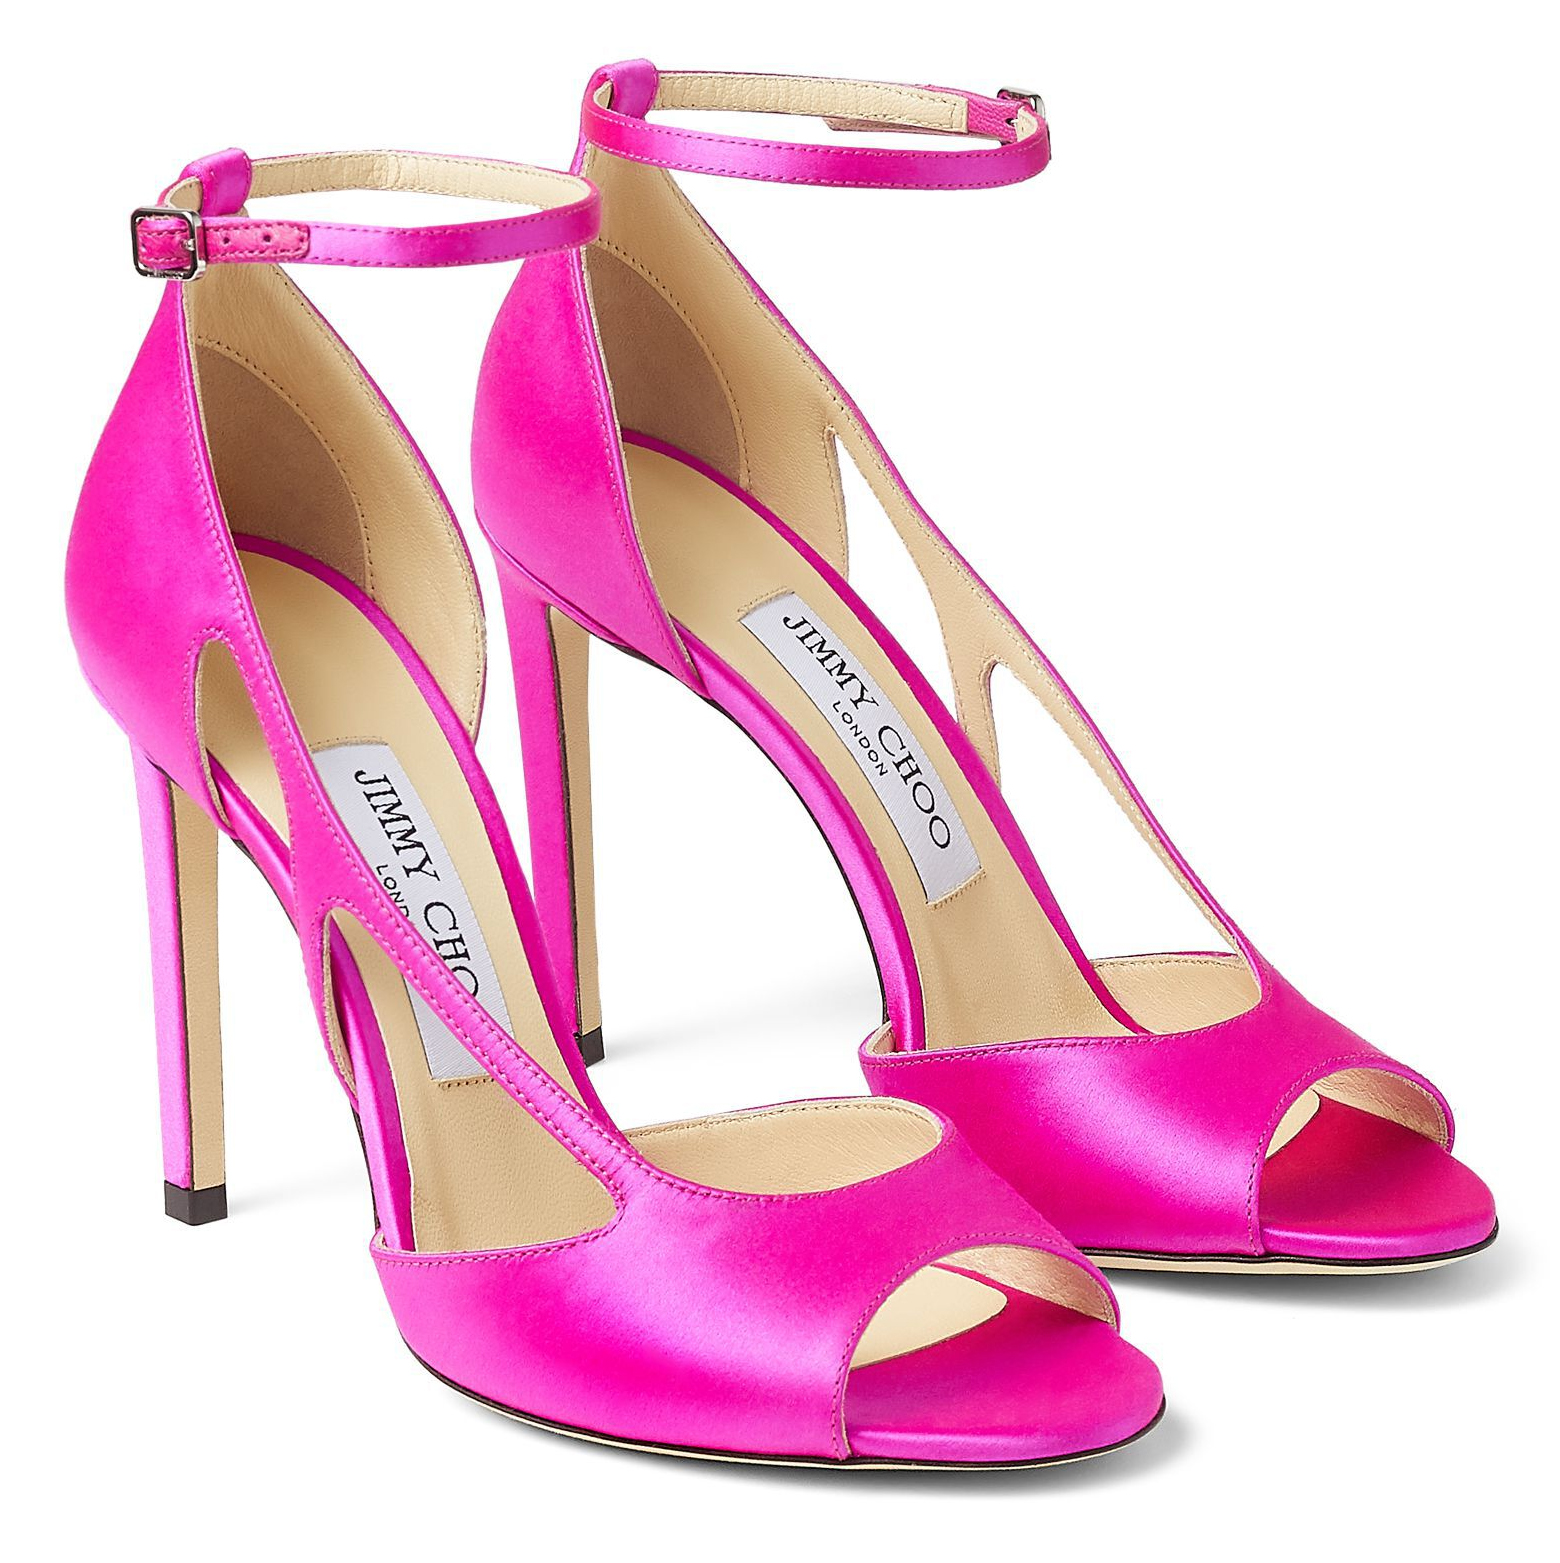 Jimmy Choo Liu Shoes. Bright Pink High Heel Shoes. Jimmy Choo Fuchsia Pink Shoes. Fuchsia Pink Shoes for the Races 2021. Bright Pink colour shoes to wear to the races. Pink High Heels for the Races. Shoes to wear with a Bright Pink Dress. Hot Pink outfits for the races. What to wear to the races 2021.